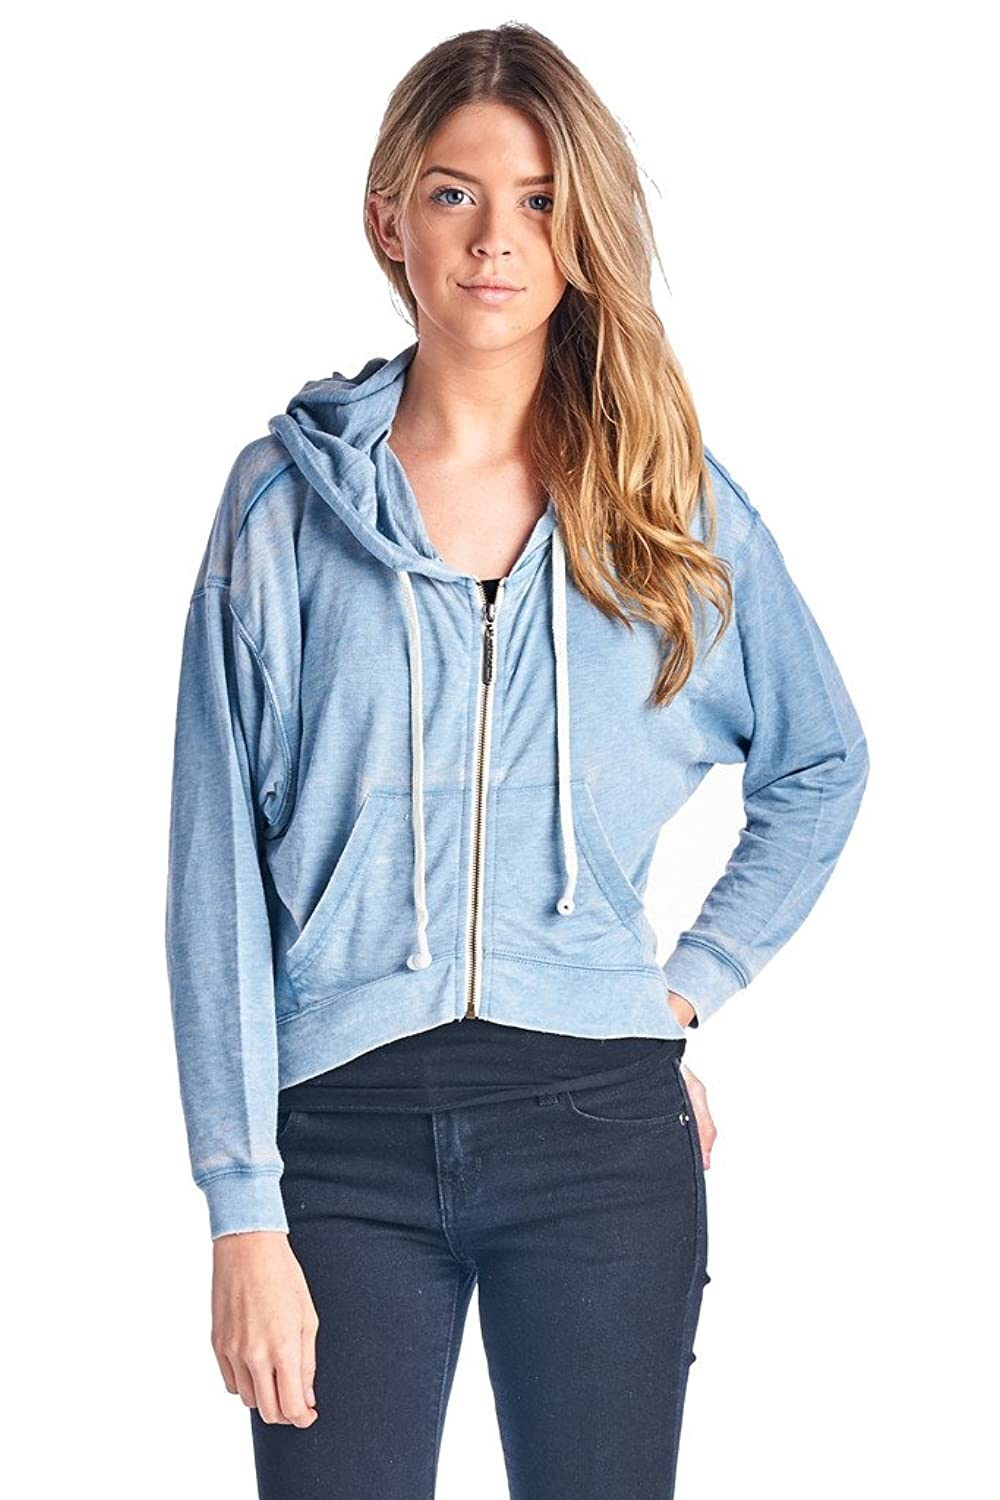 Zip Up Headphones Hoodie Buddie Girls Zip Up Builtin Headphones Short Fit Light Blue